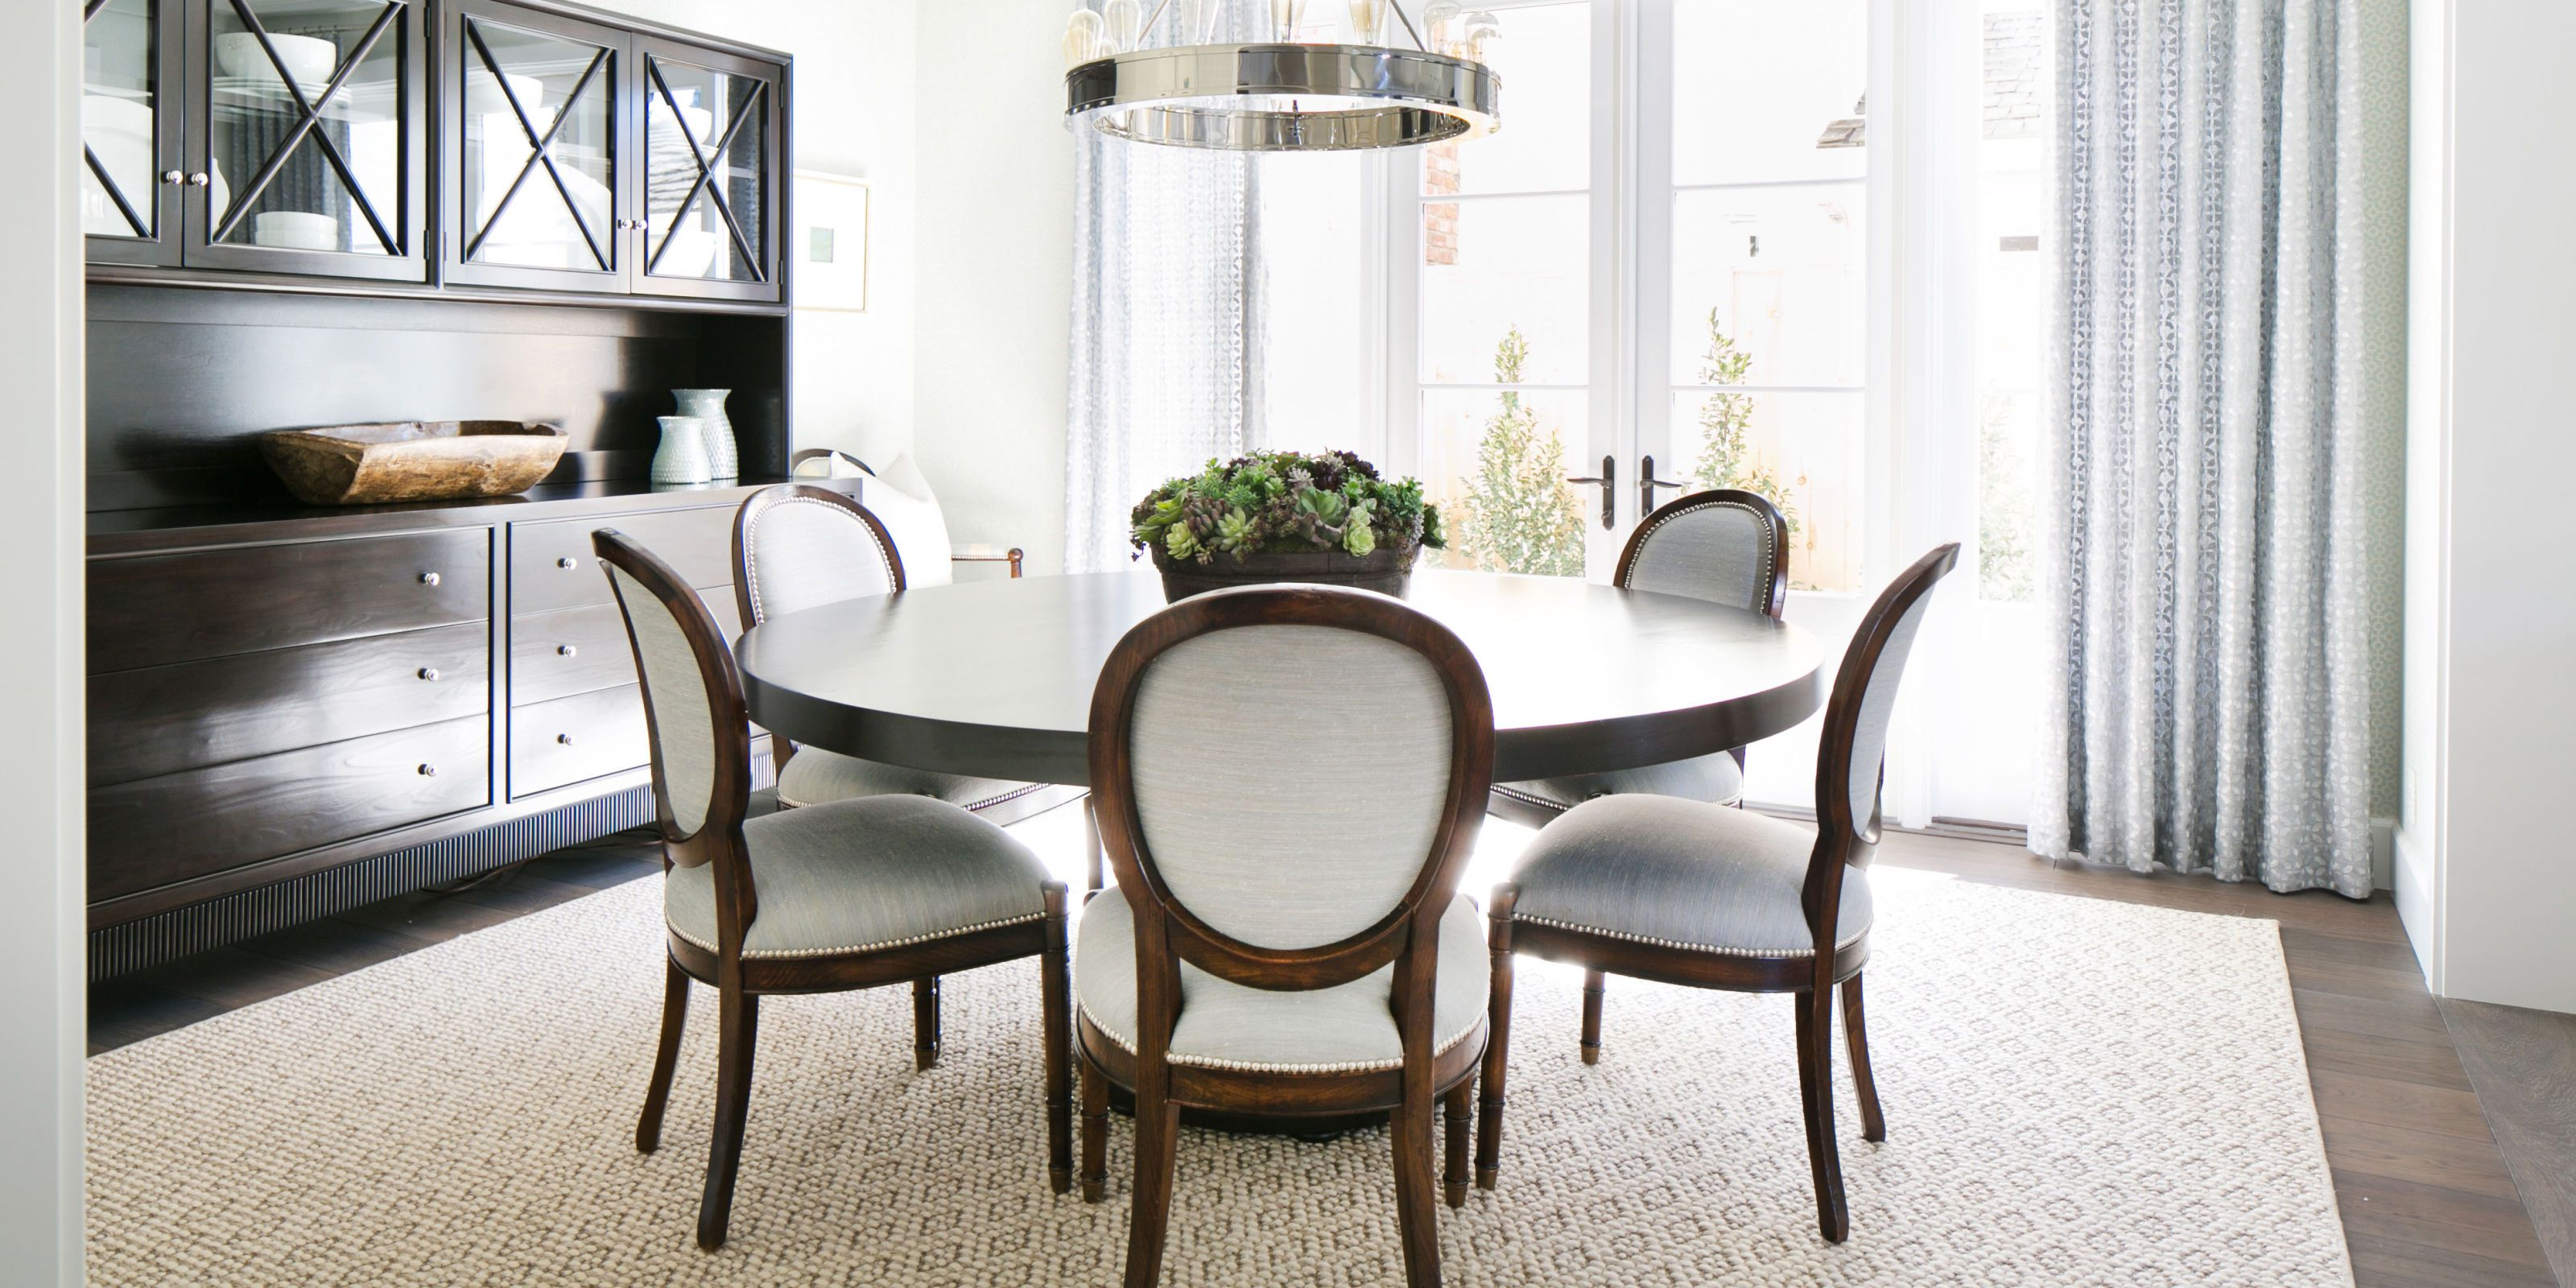 23 Best Round Dining Room Tables For Cozy Feasting